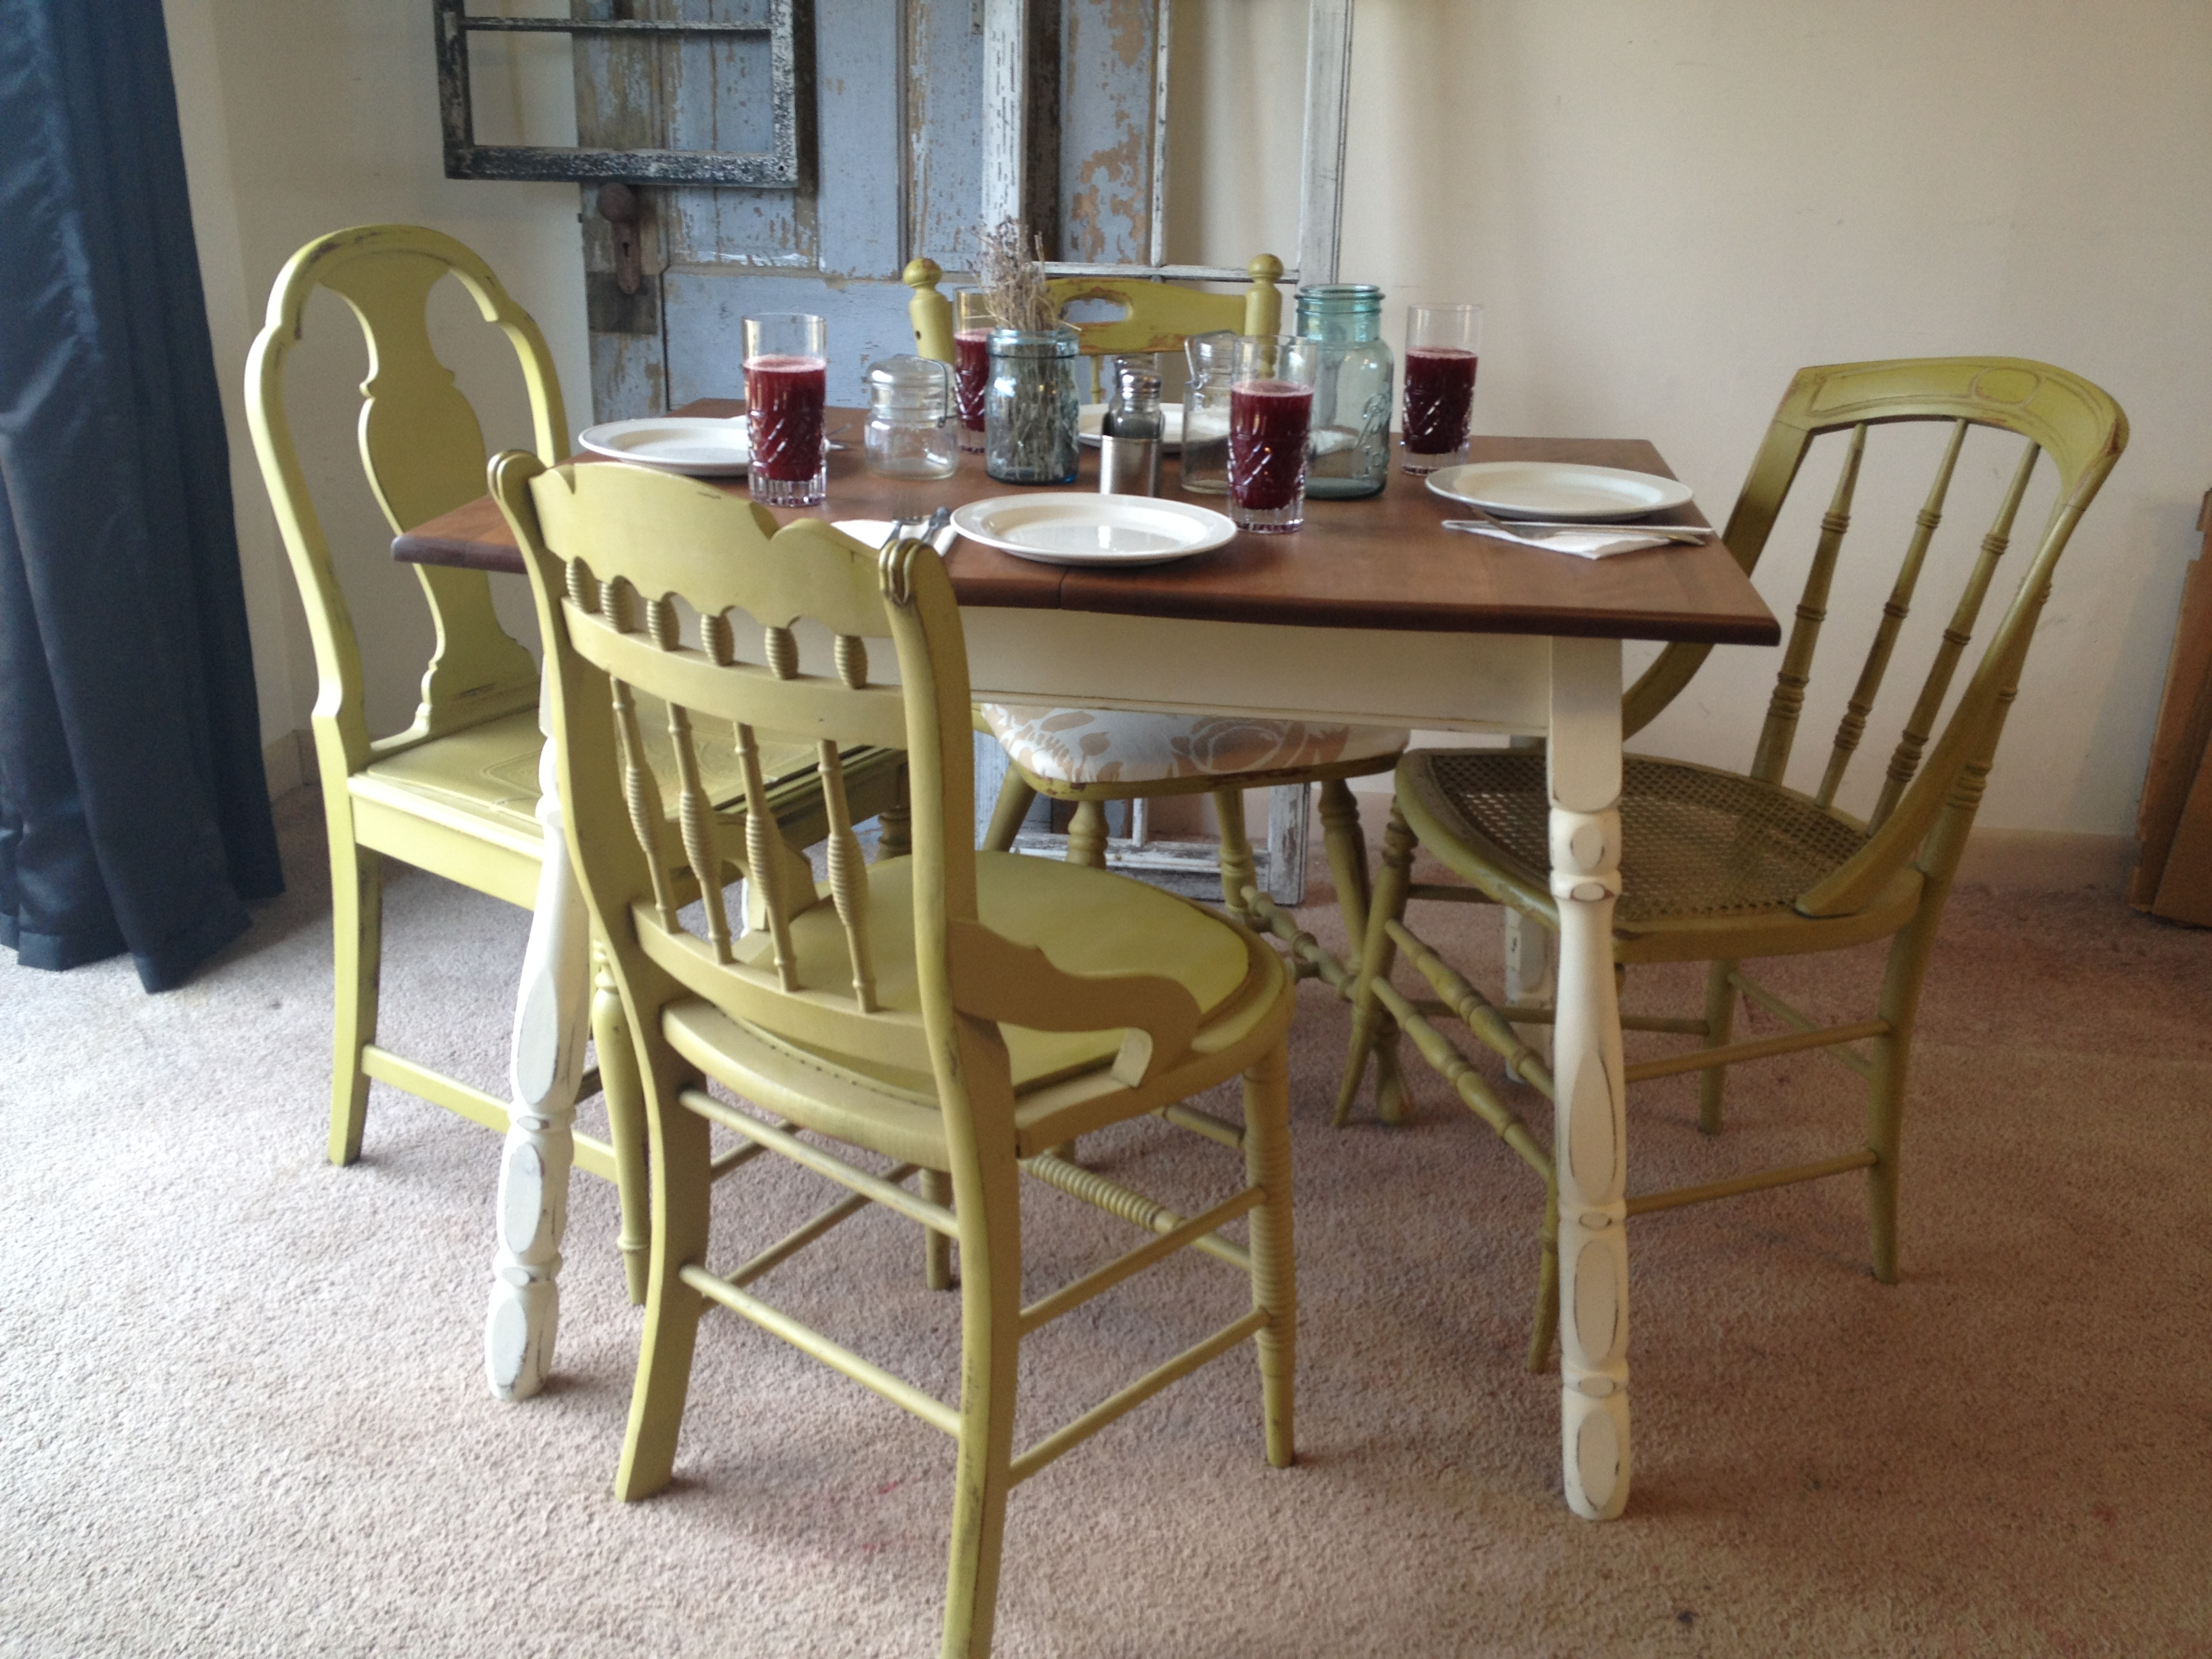 Small Kitchen Table And Chair Sets3264 X 2448